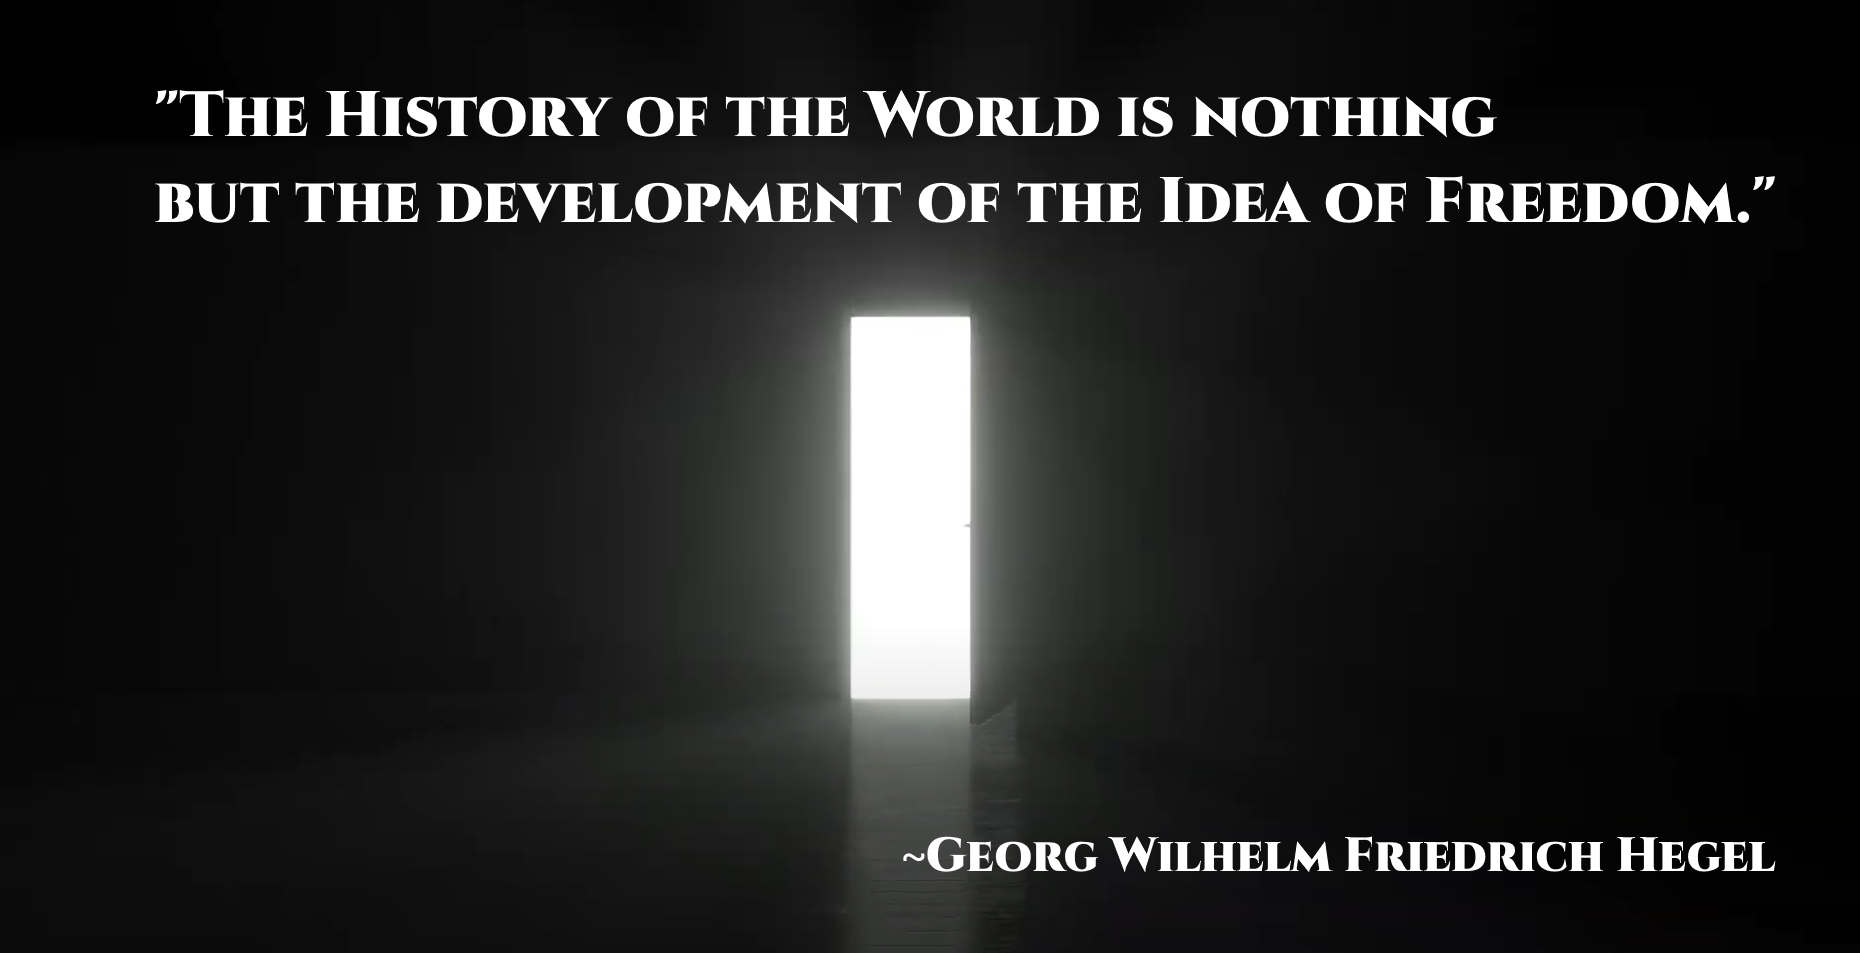 The History of the World is nothing but the development of the Idea of Freedom